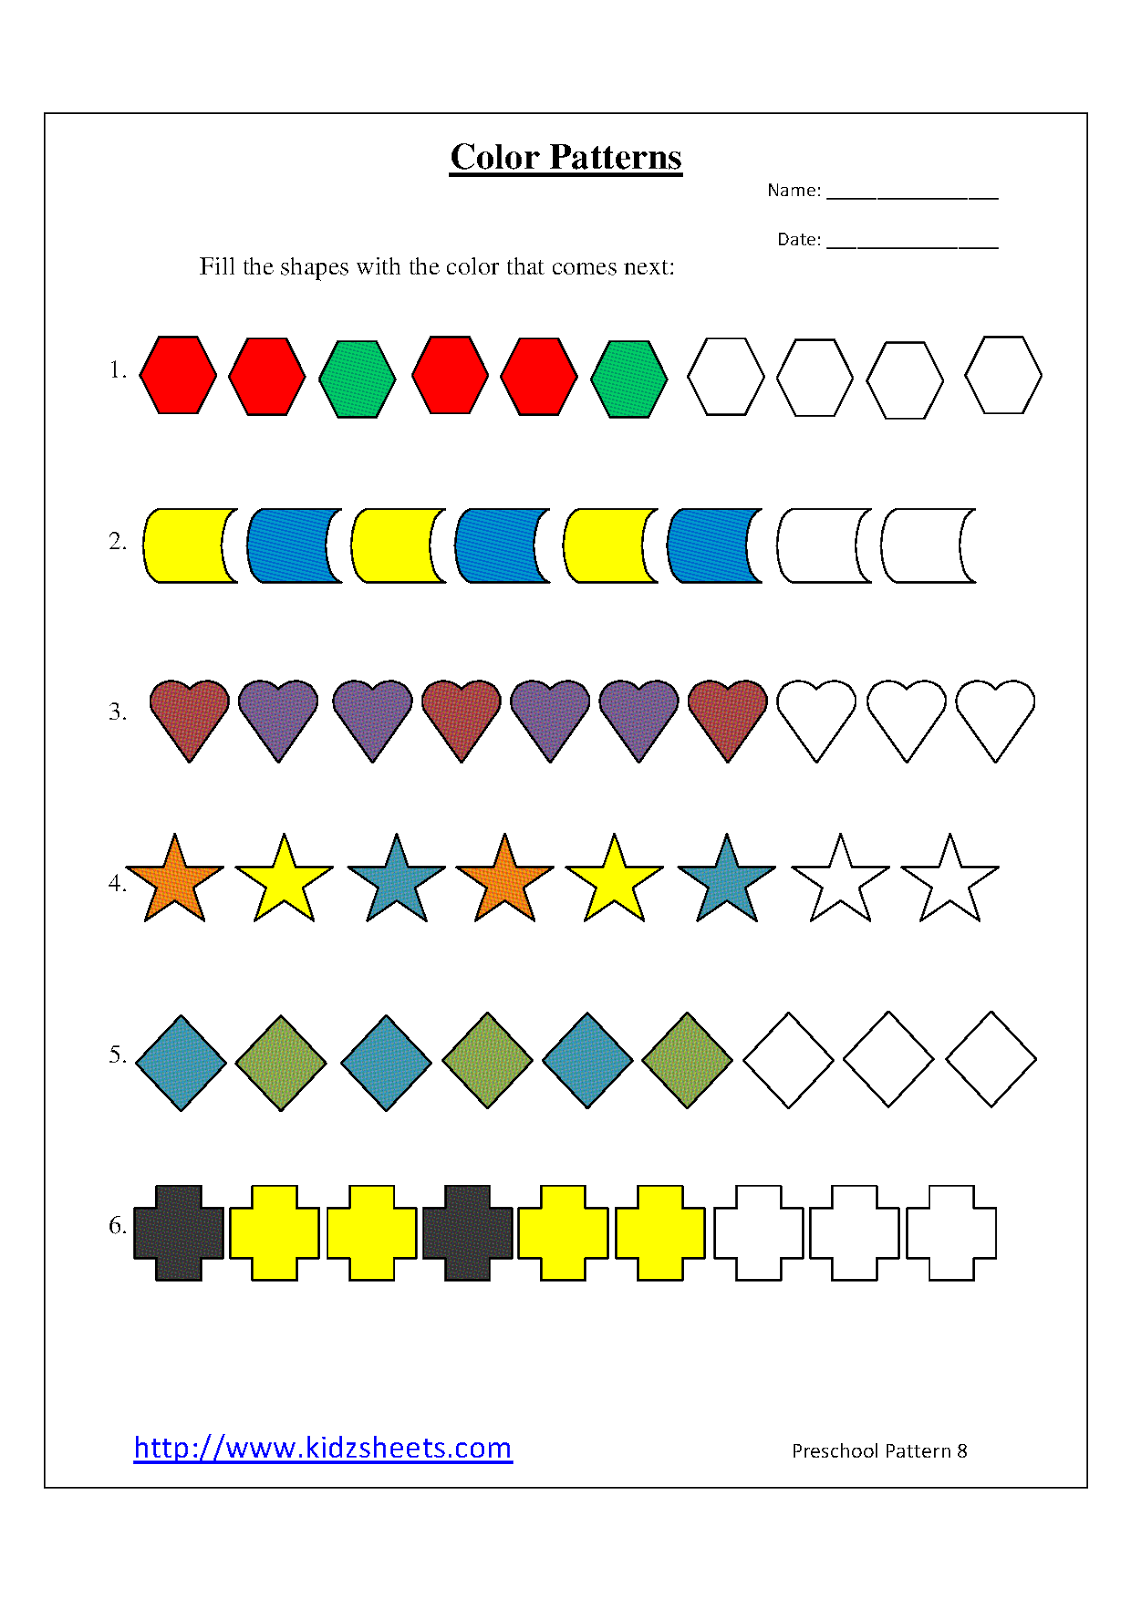 Kidz Worksheets Preschool Color Patterns Worksheet8 – Pattern Worksheets Kindergarten